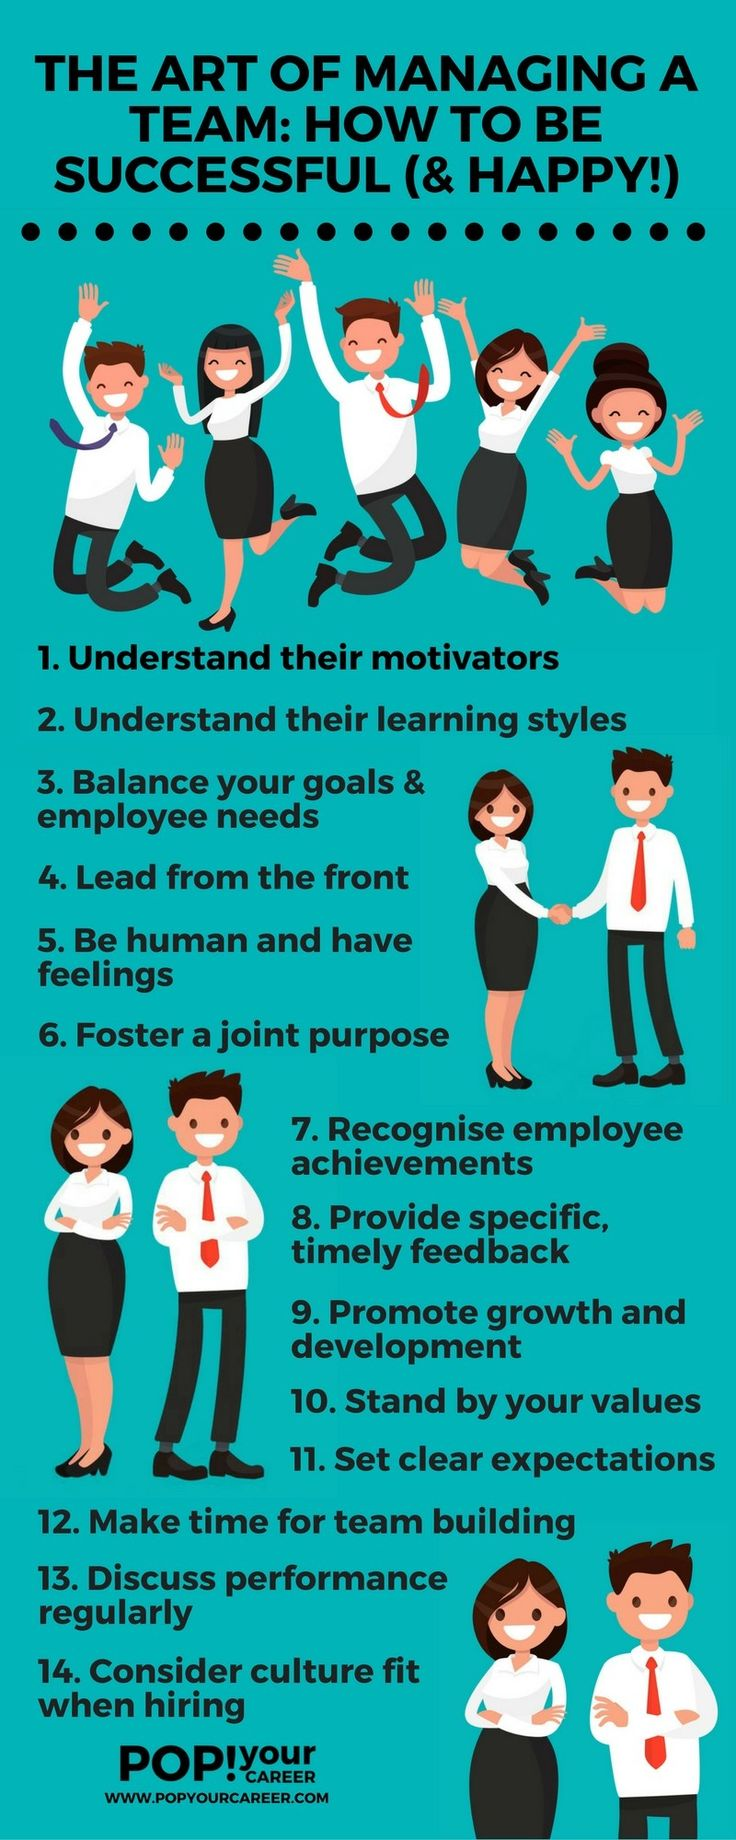 91 best leadership and management advice images on pinterest